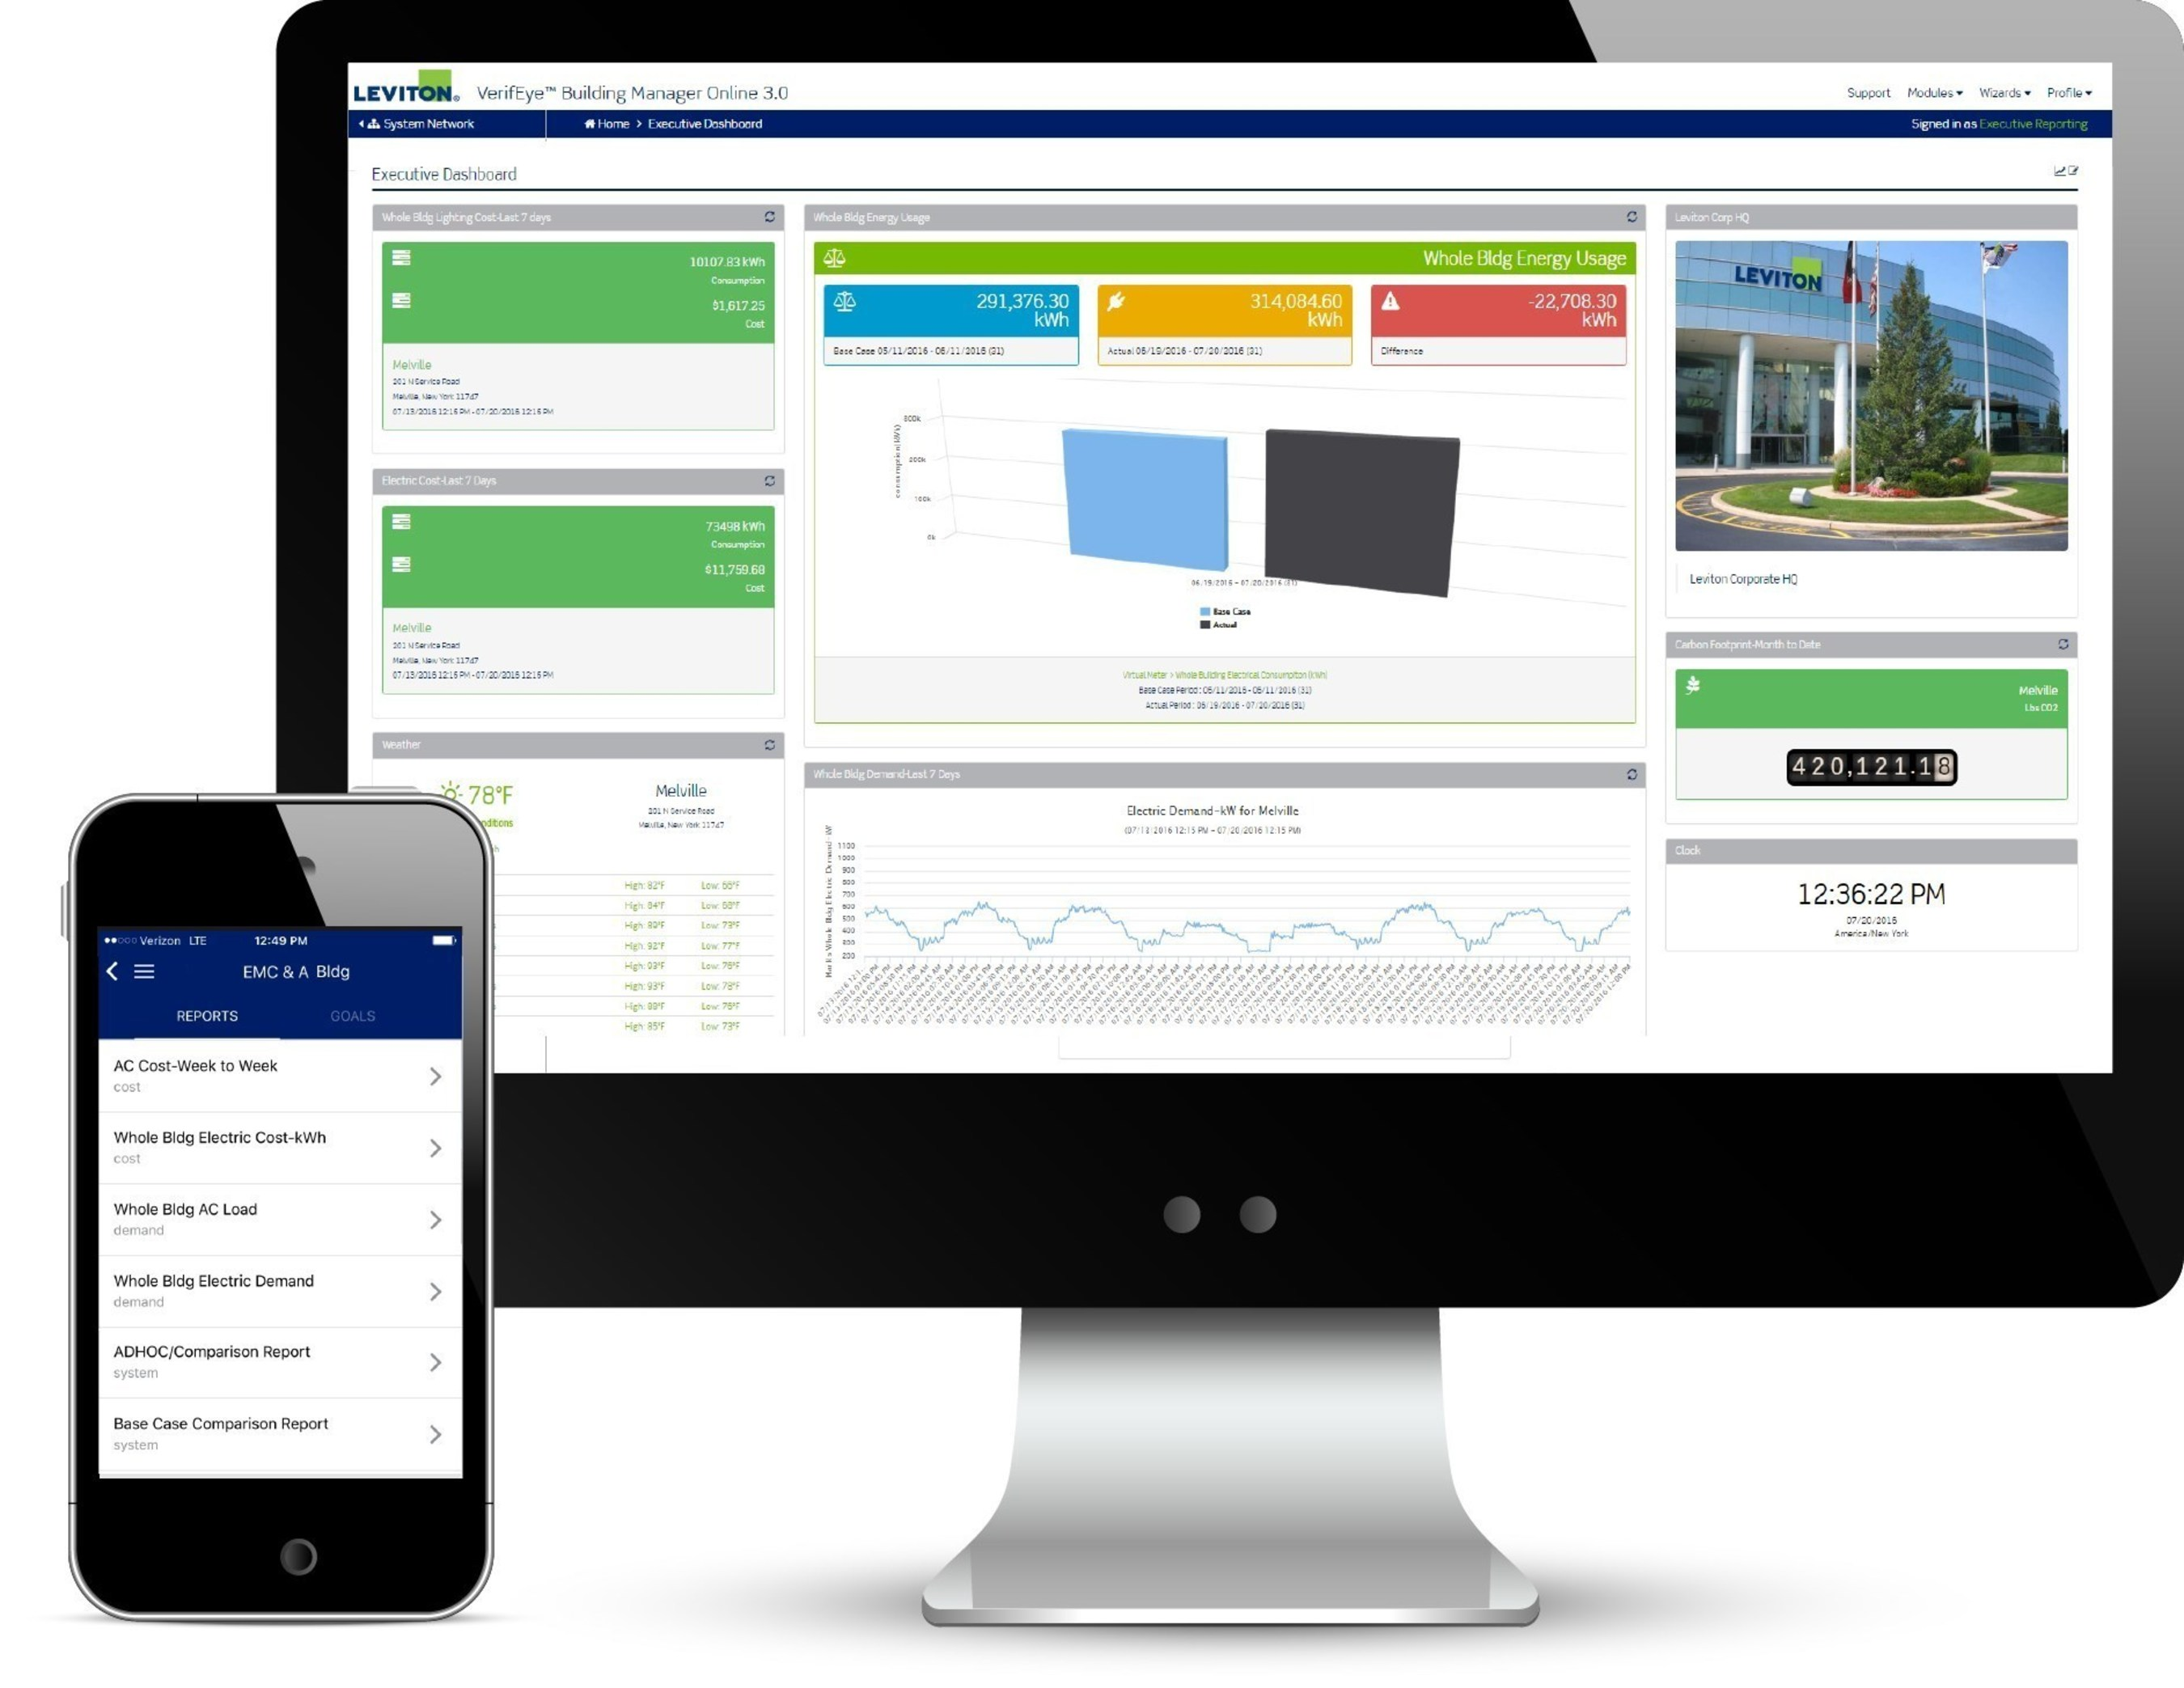 Leviton Launches VerifEye BMO 3.0 Energy Monitoring and Tenant ...